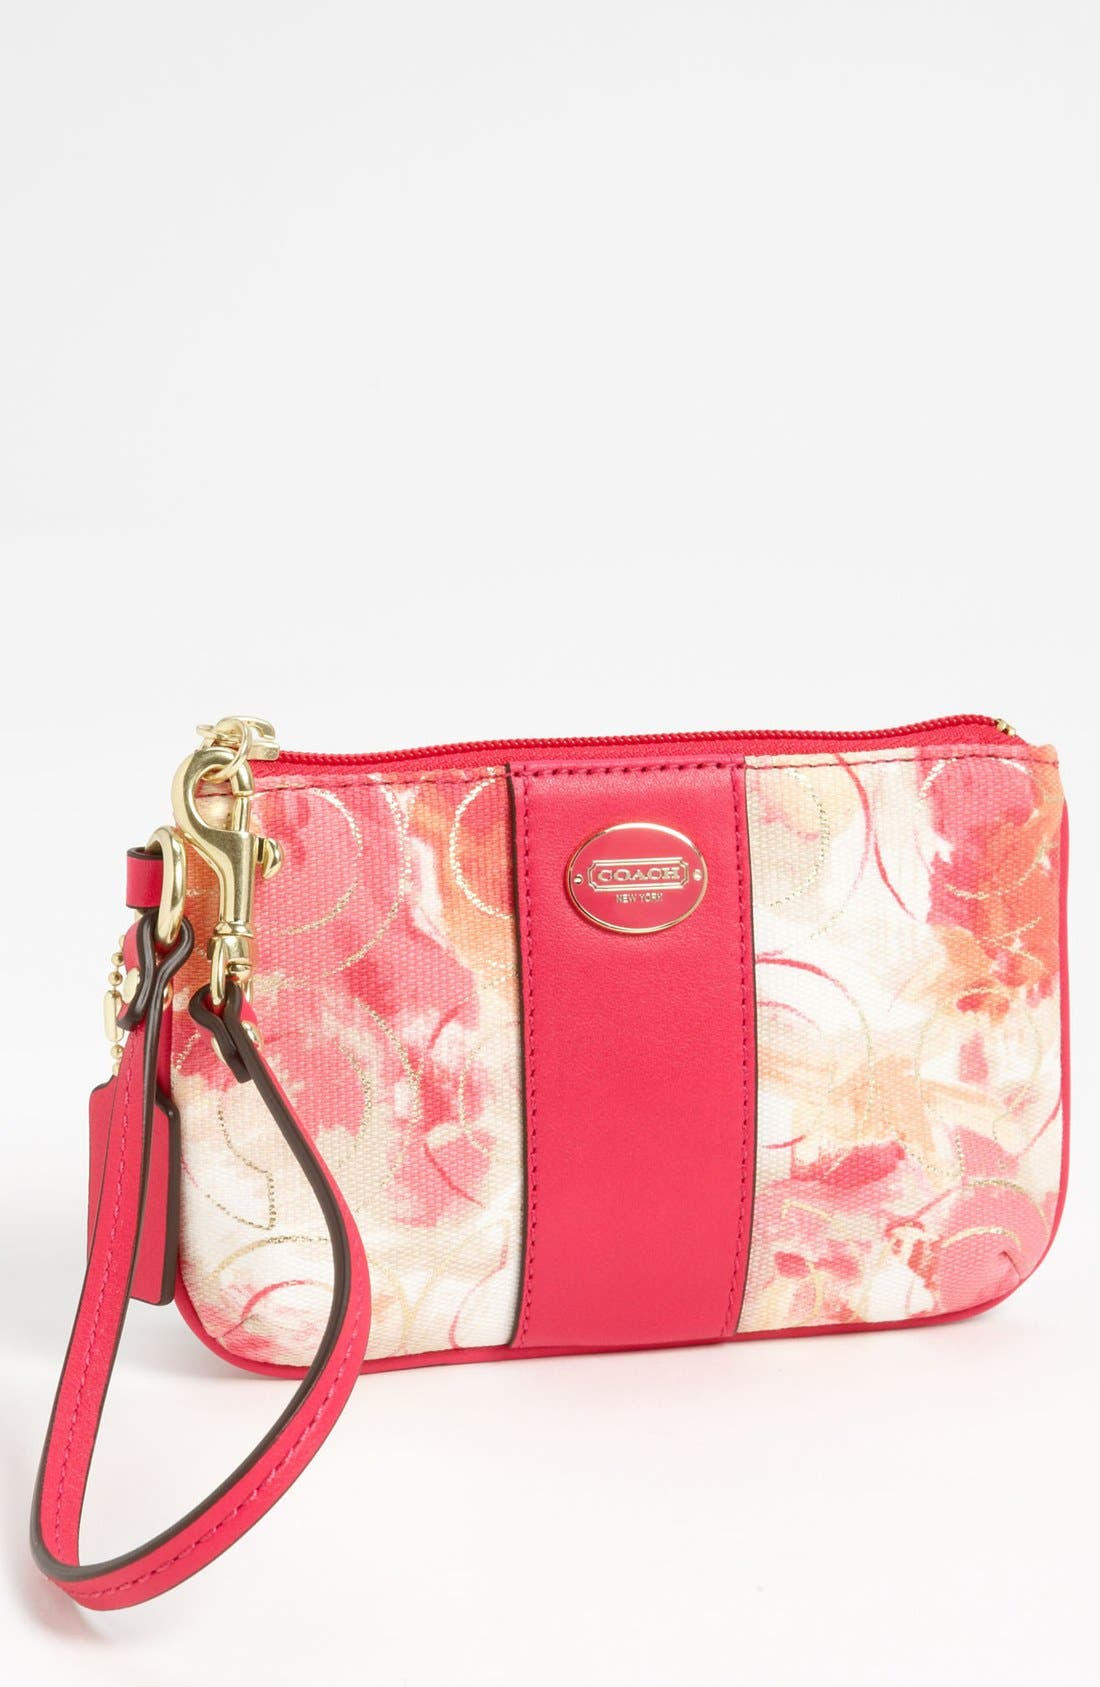 Main Image - COACH 'Small' Floral Wristlet